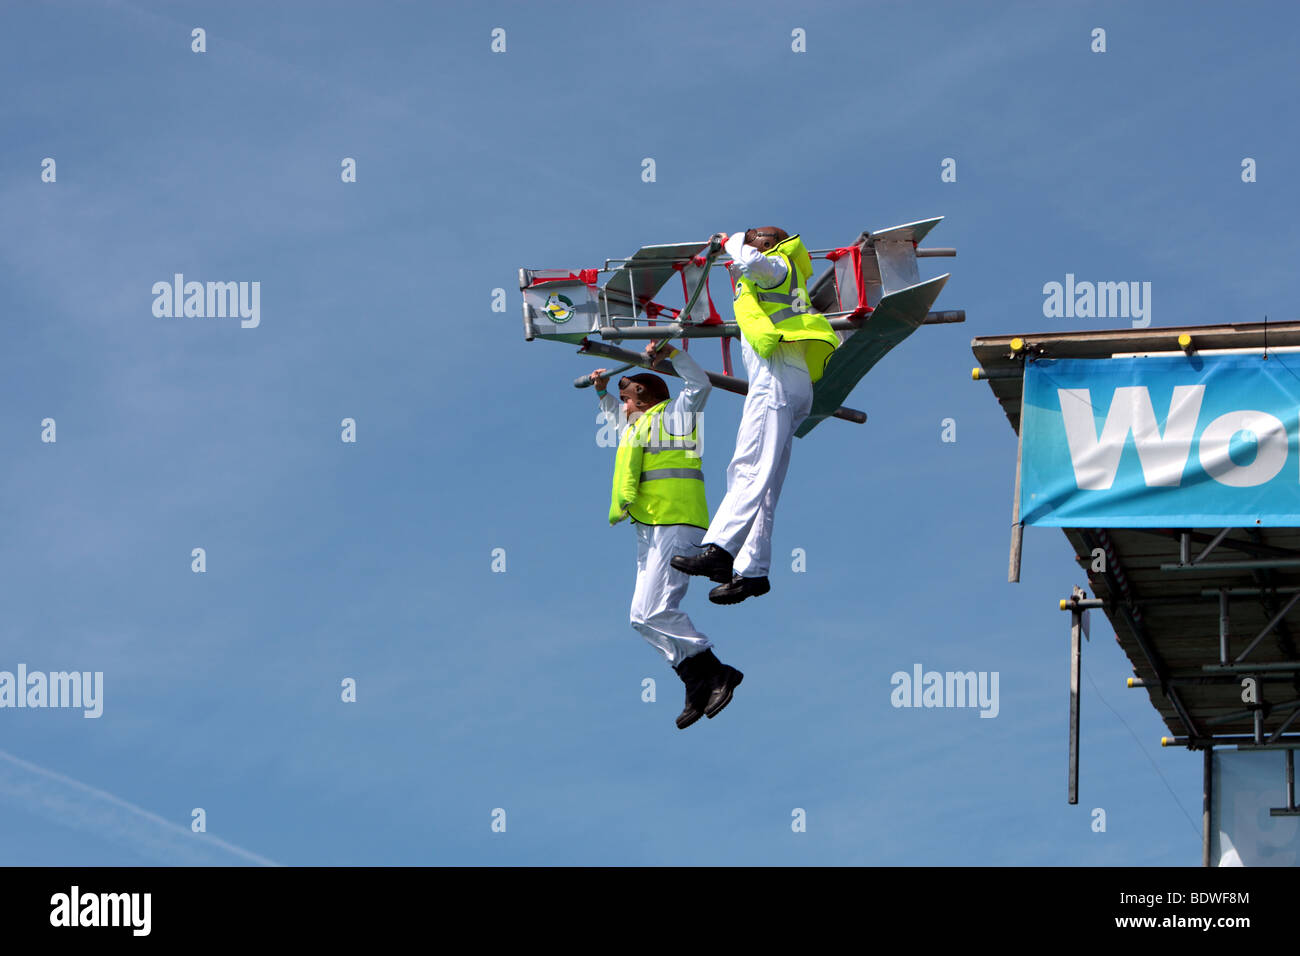 Two Health and Safety Officers Jump from Worthing Pier trying to fly a stepladder in Worthing Birdman Competition Stock Photo